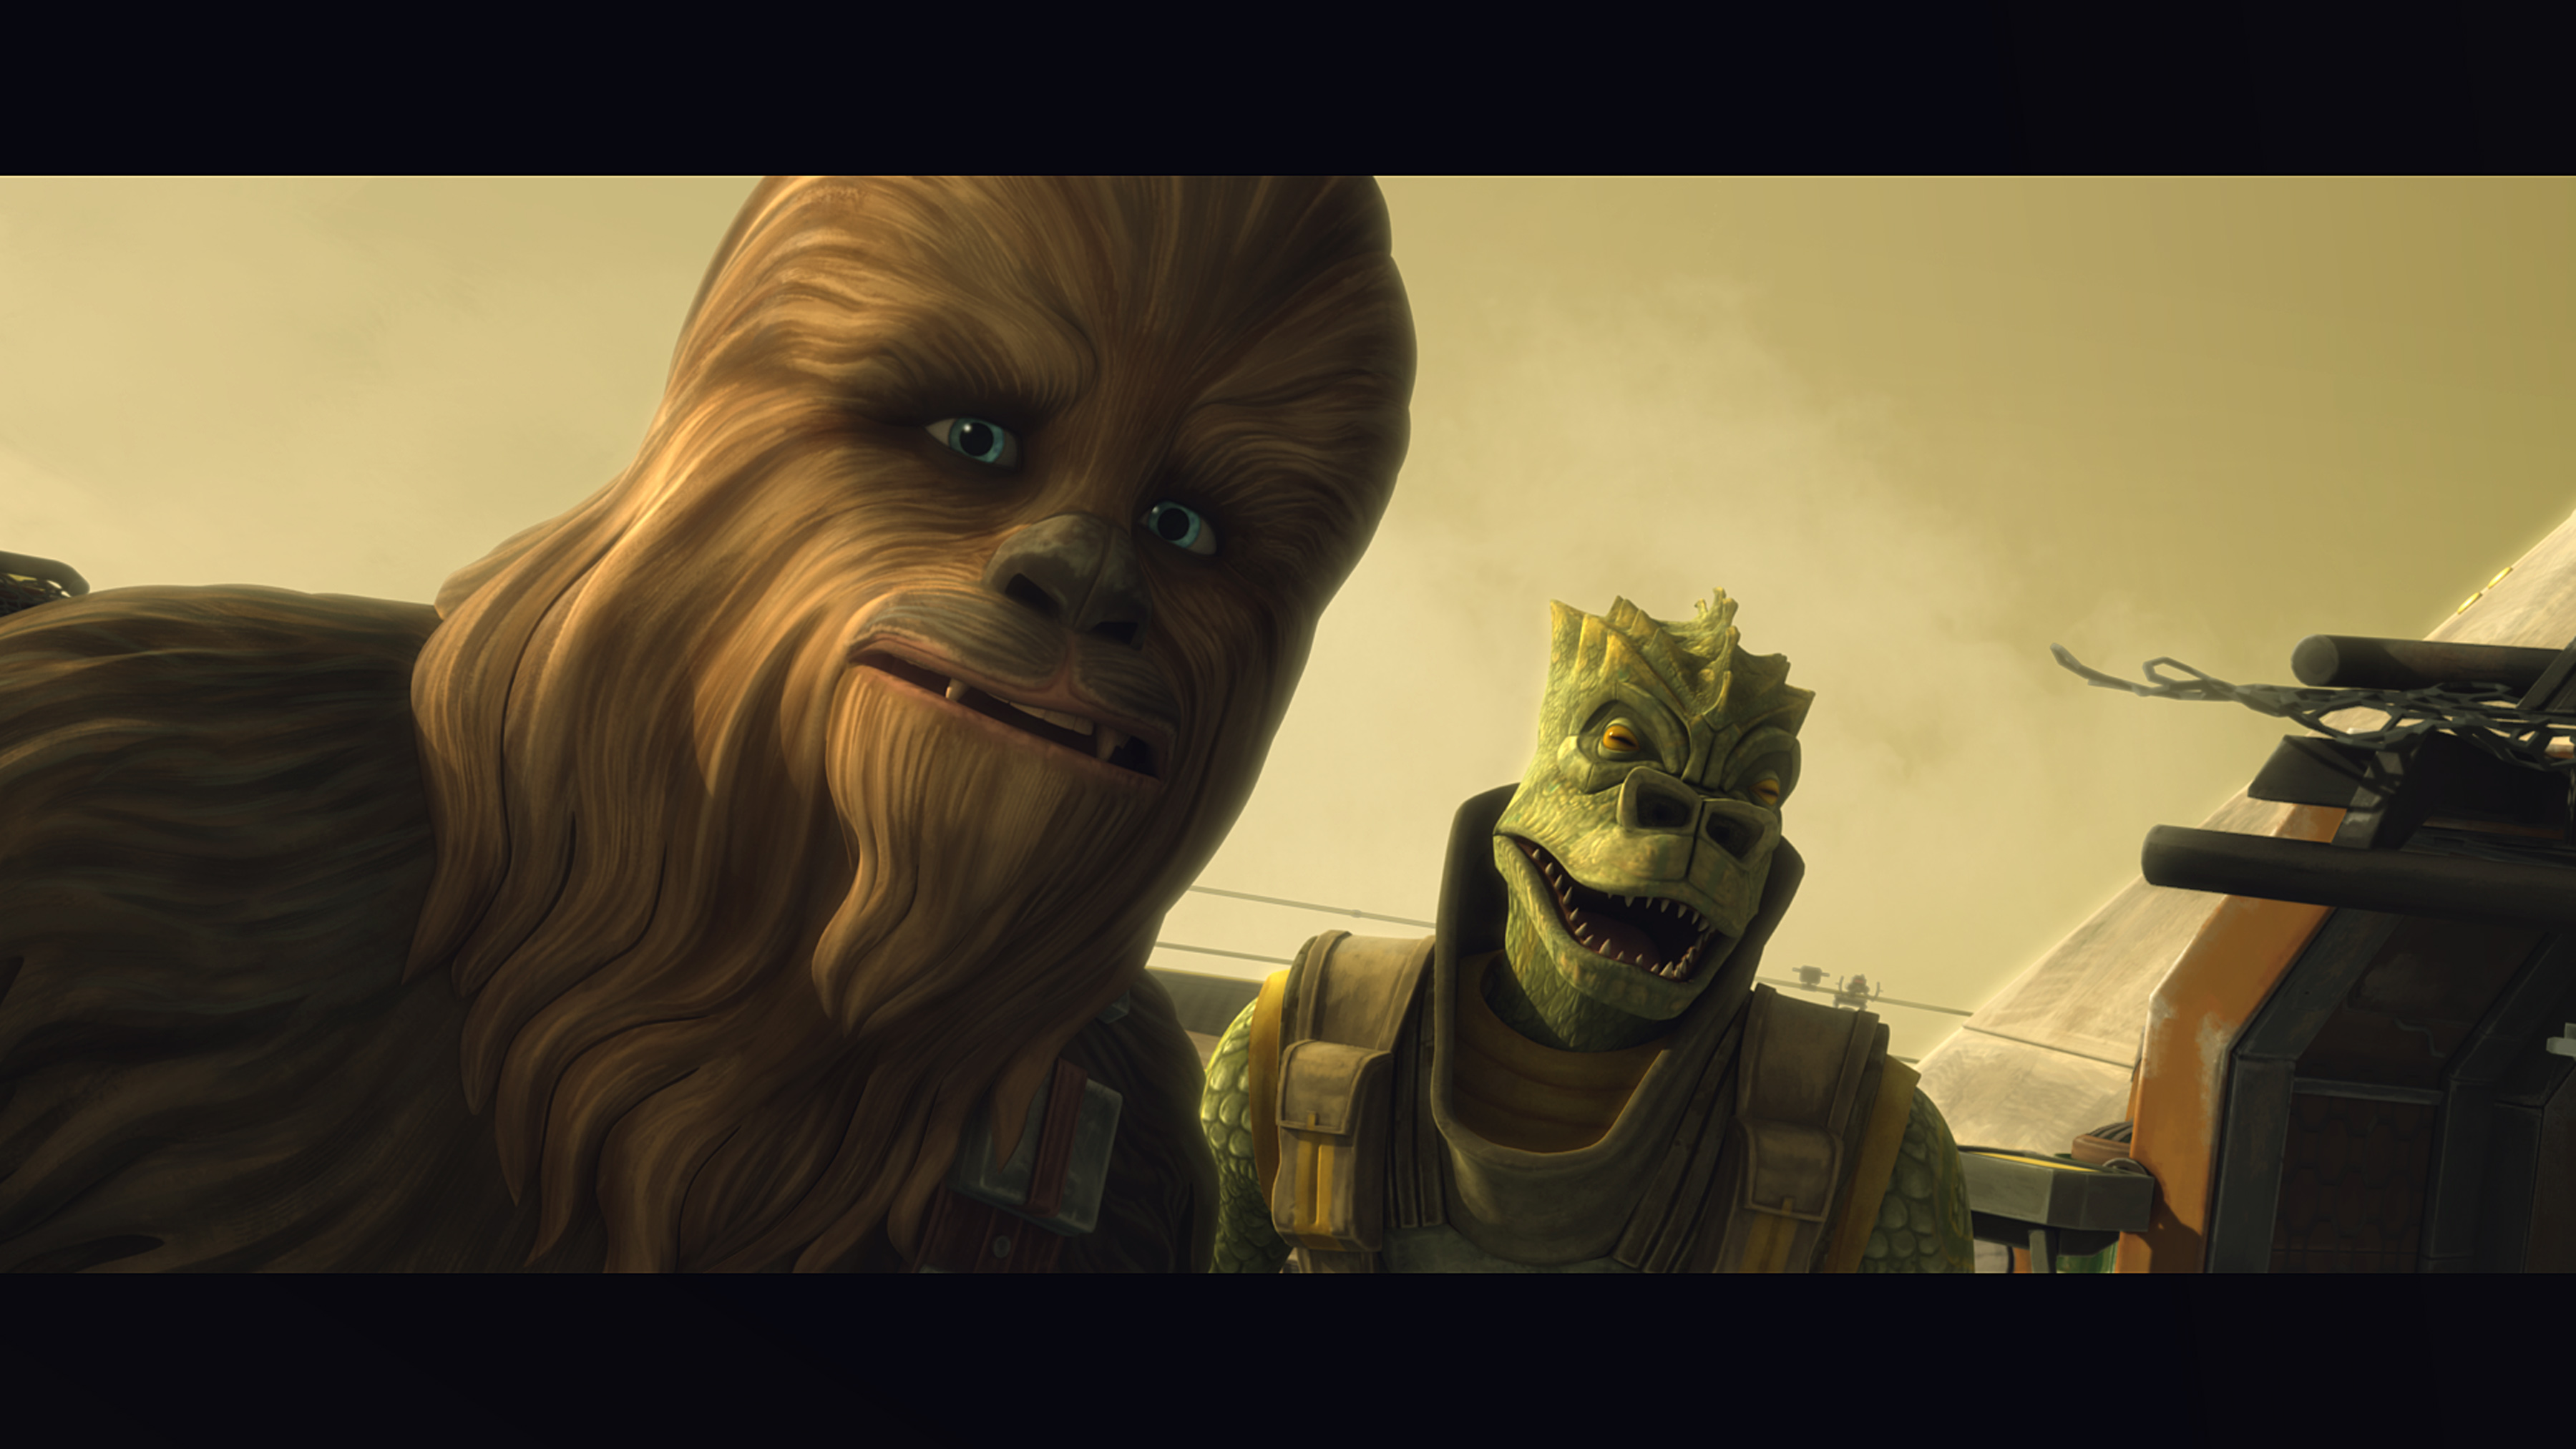 Chewbacca Wallpapers 3600x2025